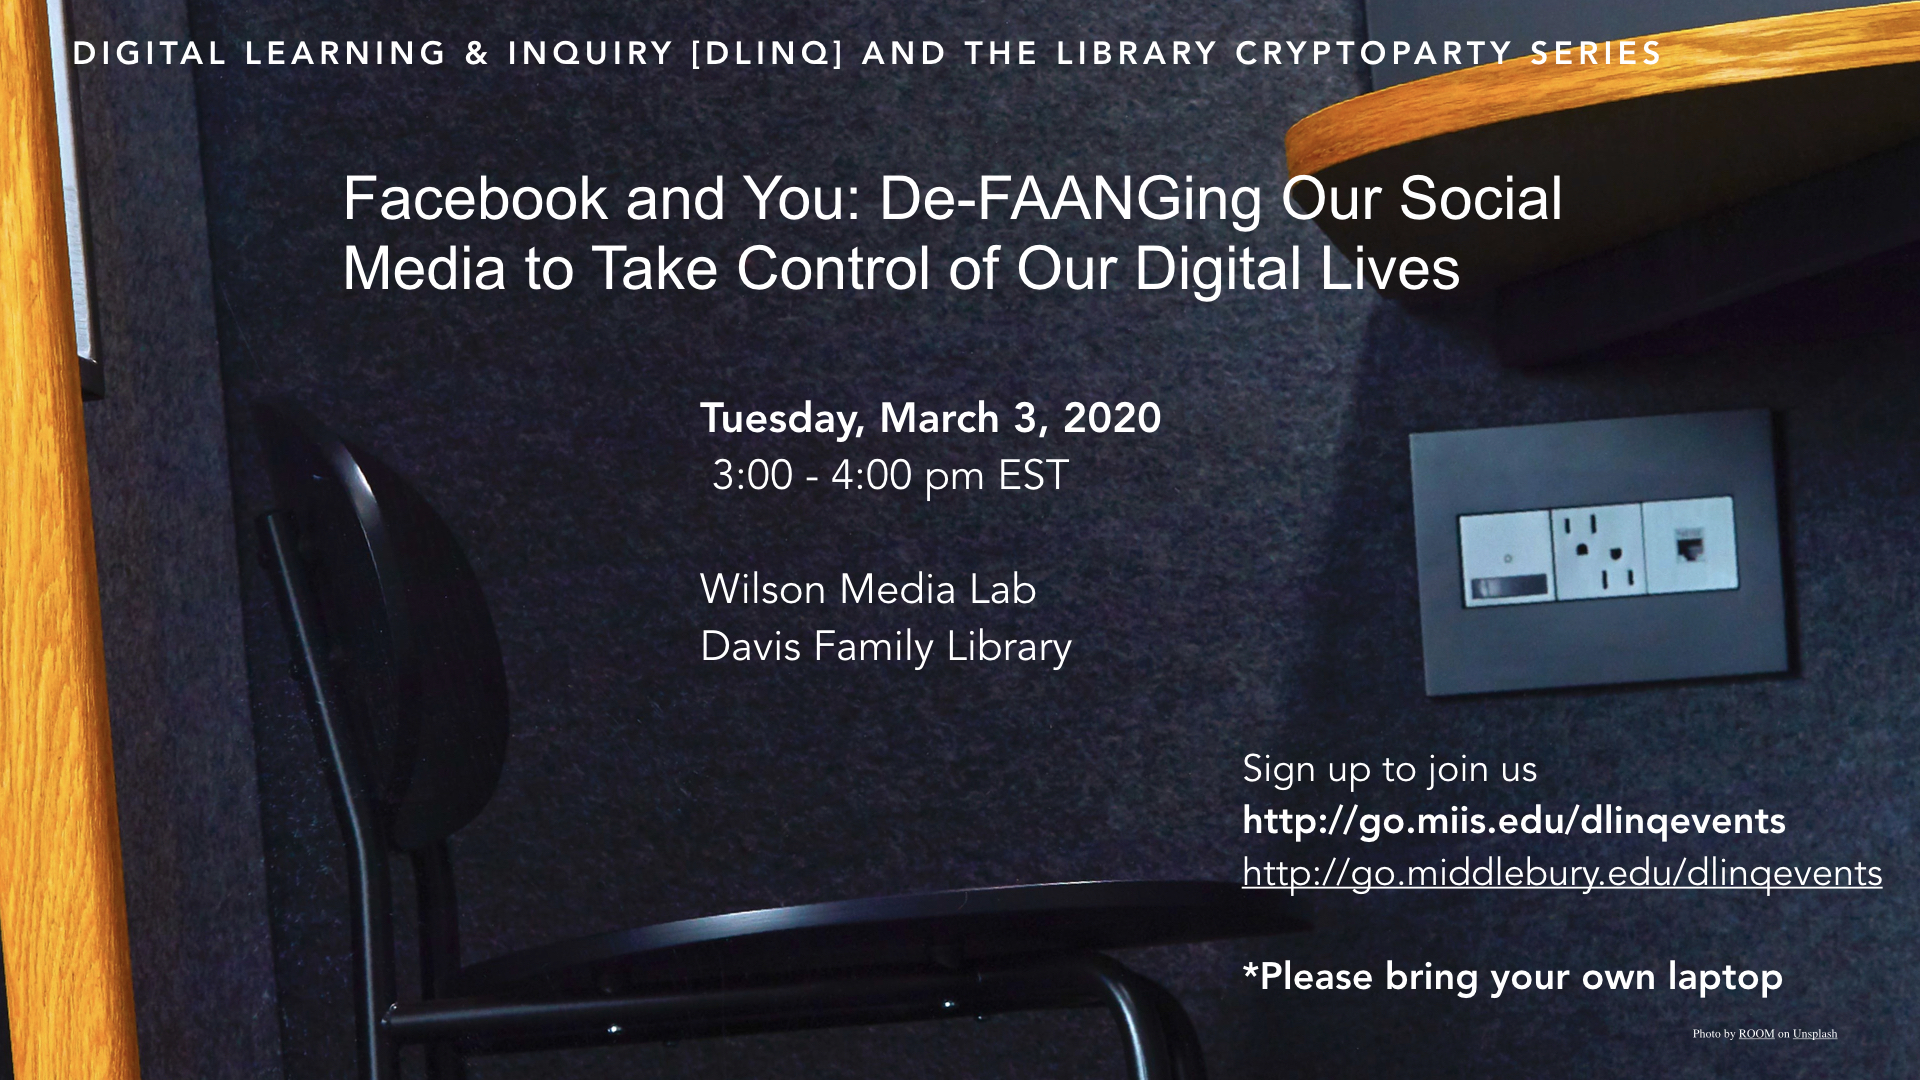 DLINQ and Library Facebook Cryptoparty